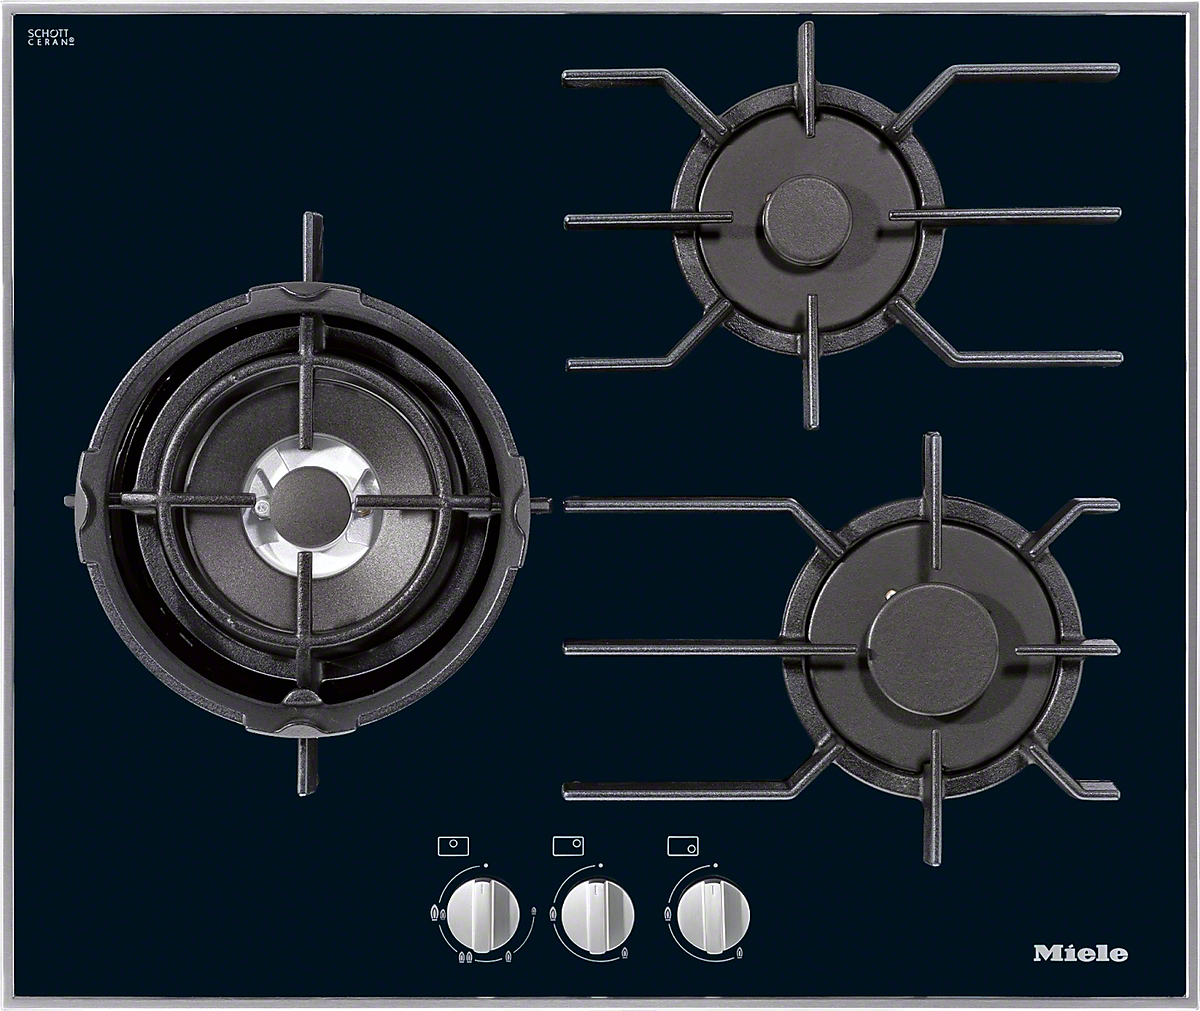 miele cooktops and combisets km 3014 gas cooktop miele incognito dishwasher service manual 832 Miele Dishwasher Parts Manual